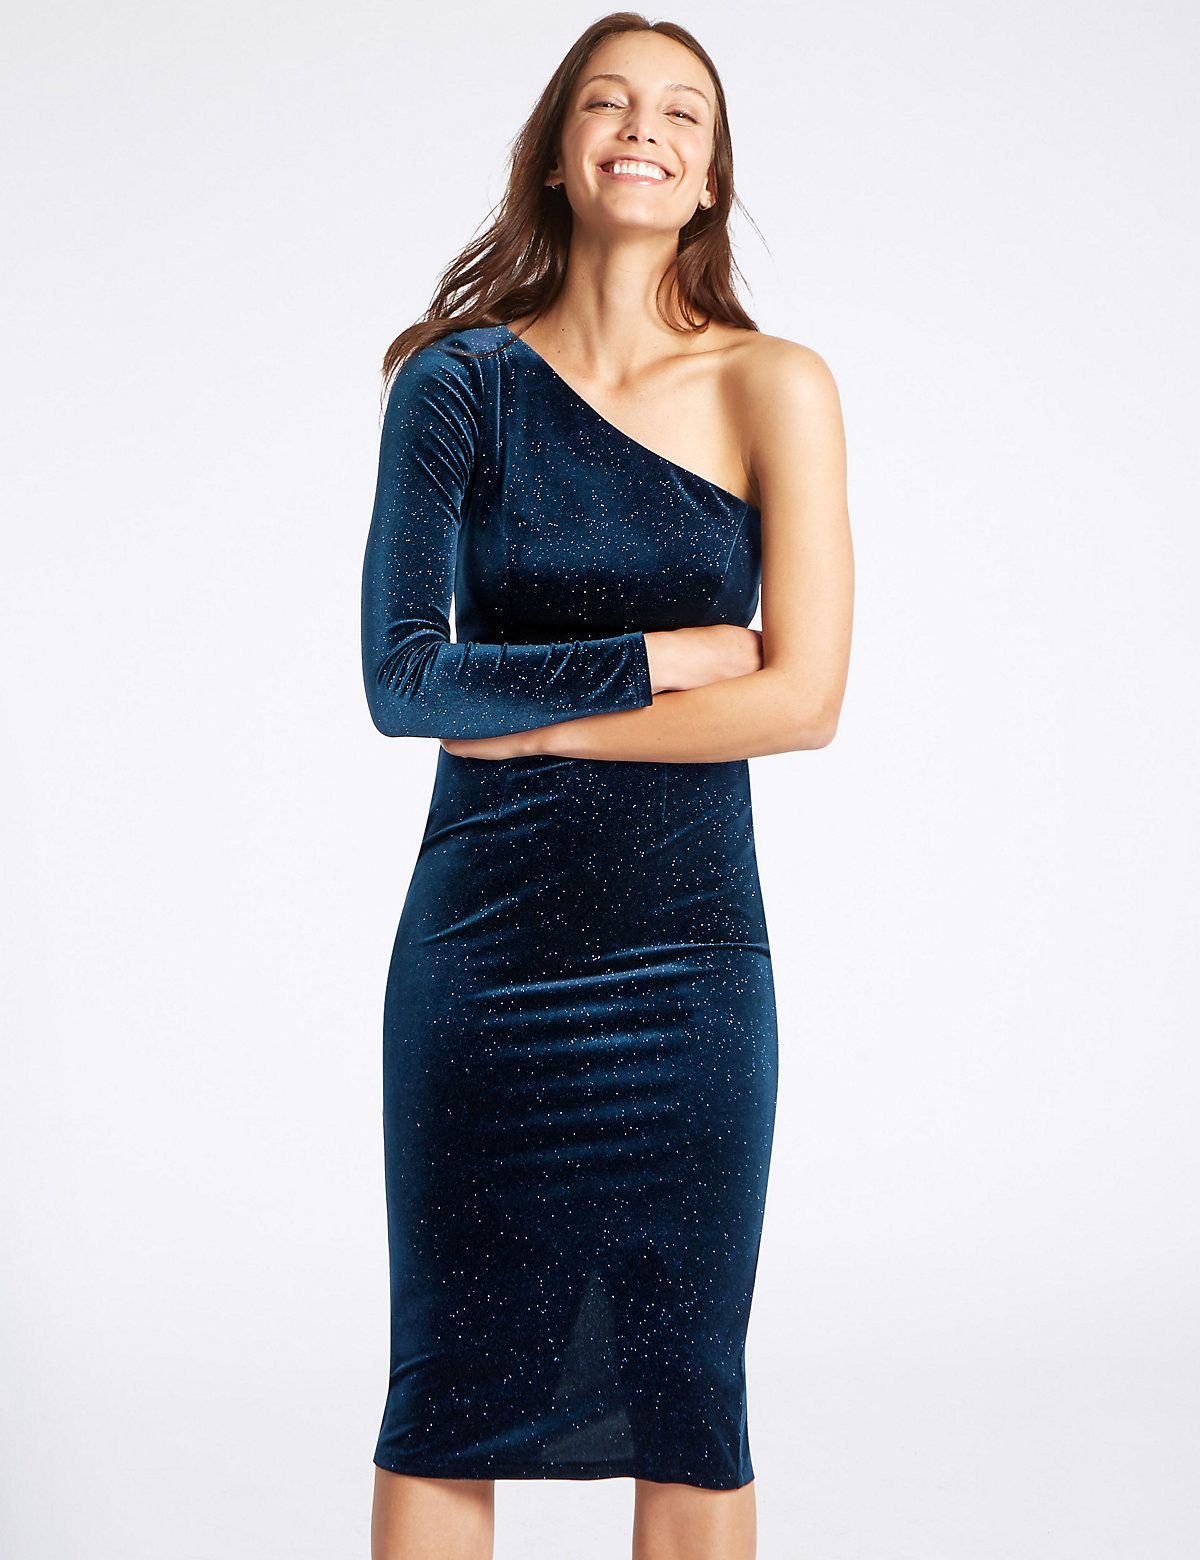 db069bbf175a9 pageData.name Strapless Dress Formal, Yarns, Shoulder Dress, Bodycon Dress